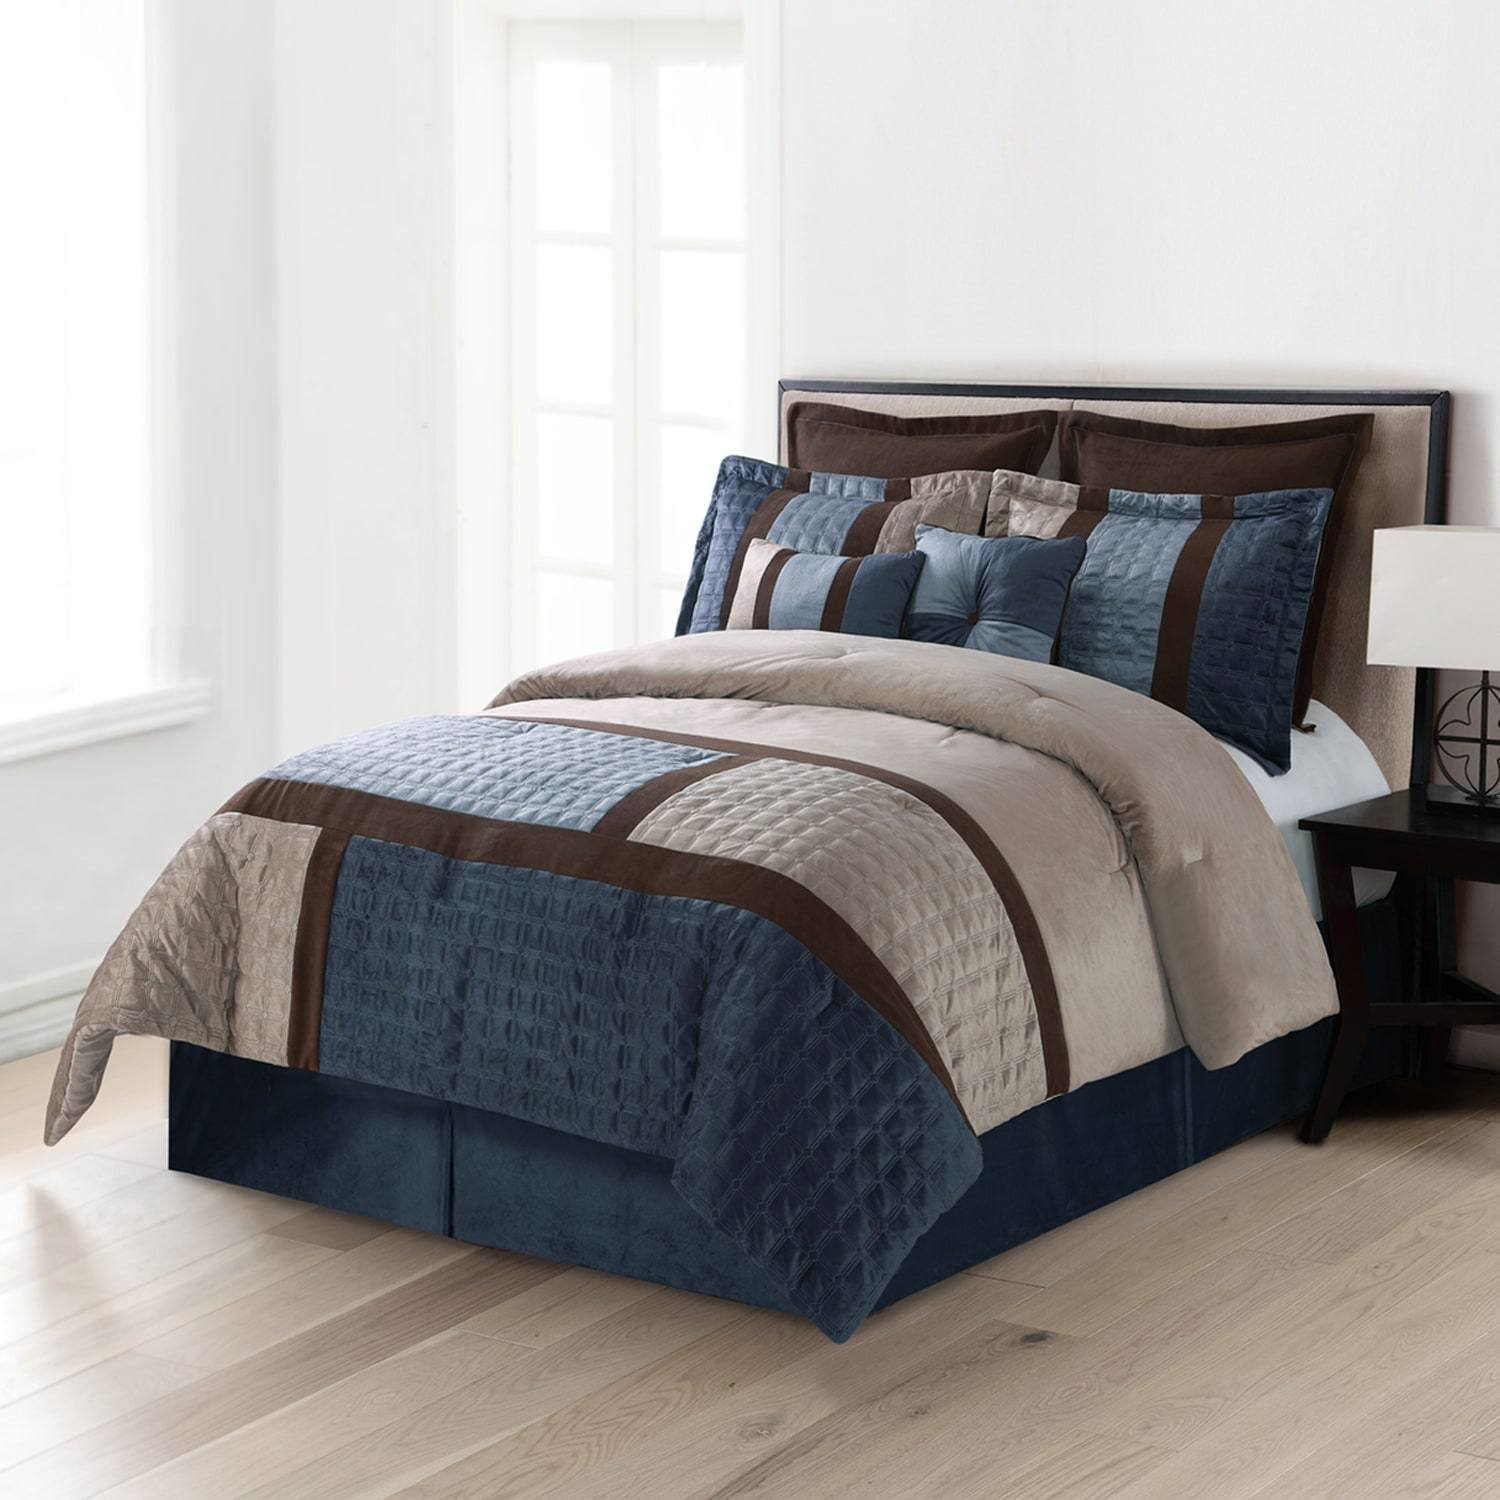 Best Home Comforter Set Kohl S With Pictures